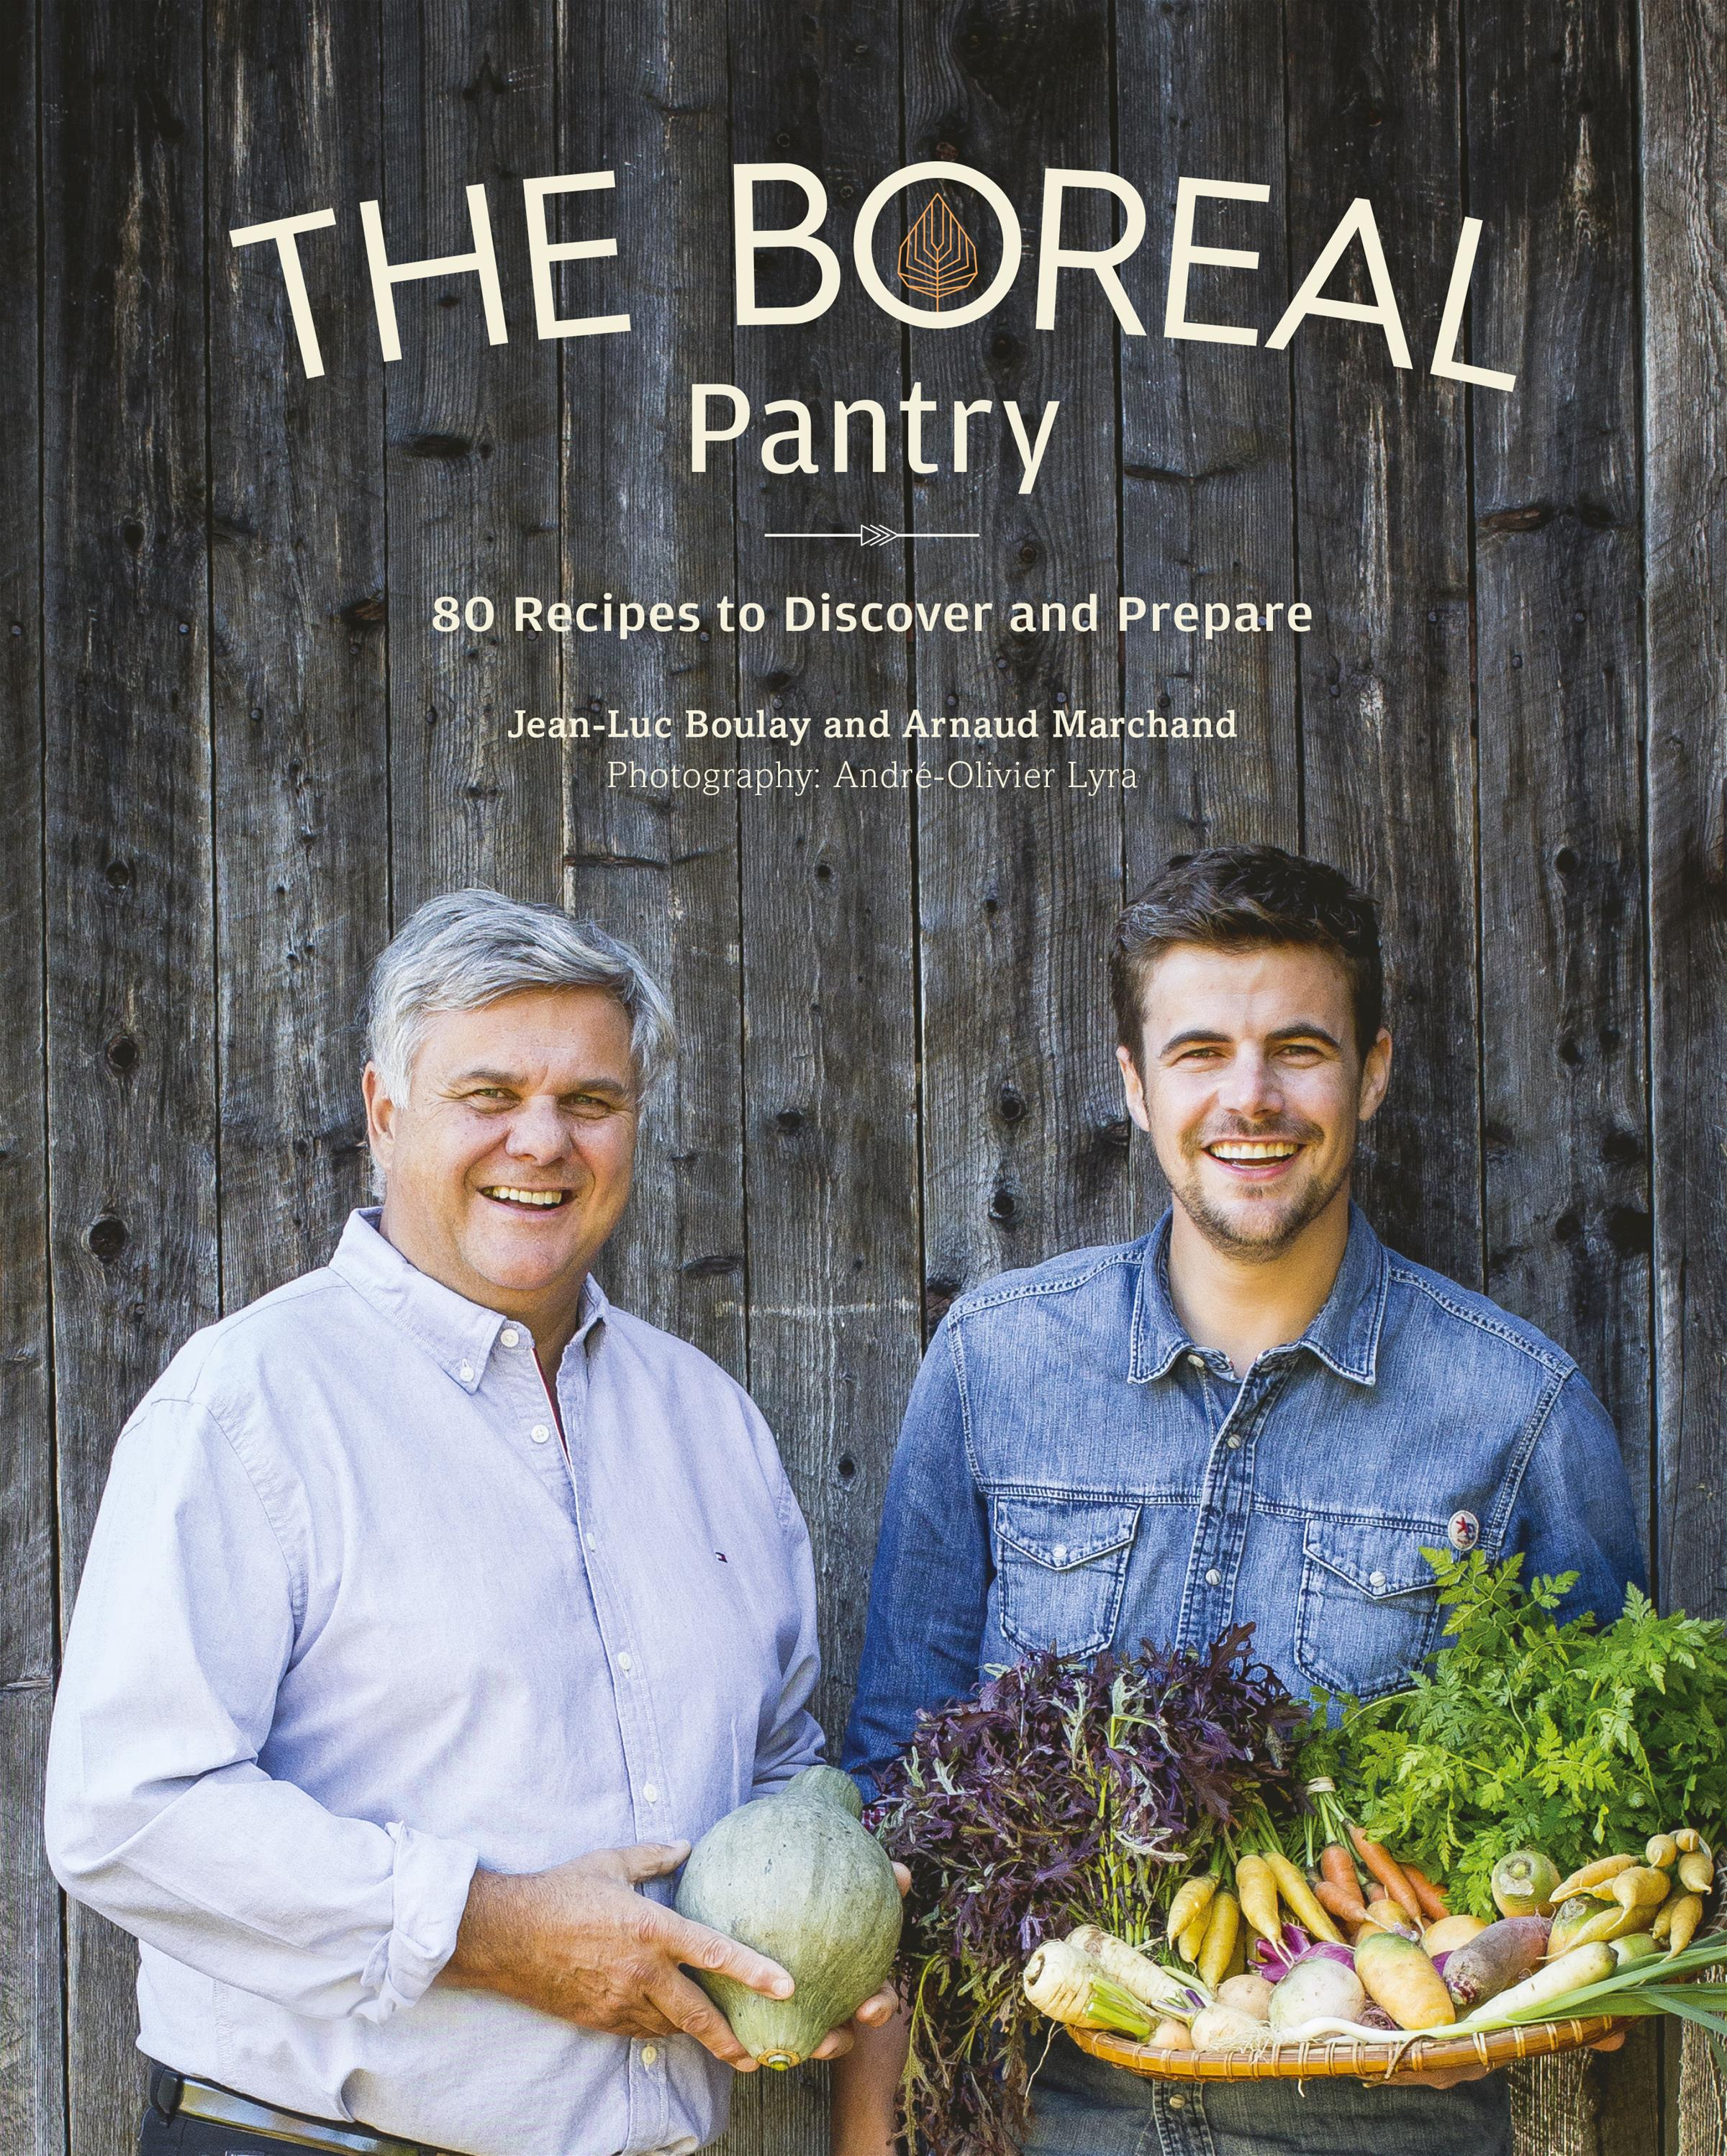 The Boreal Pantry